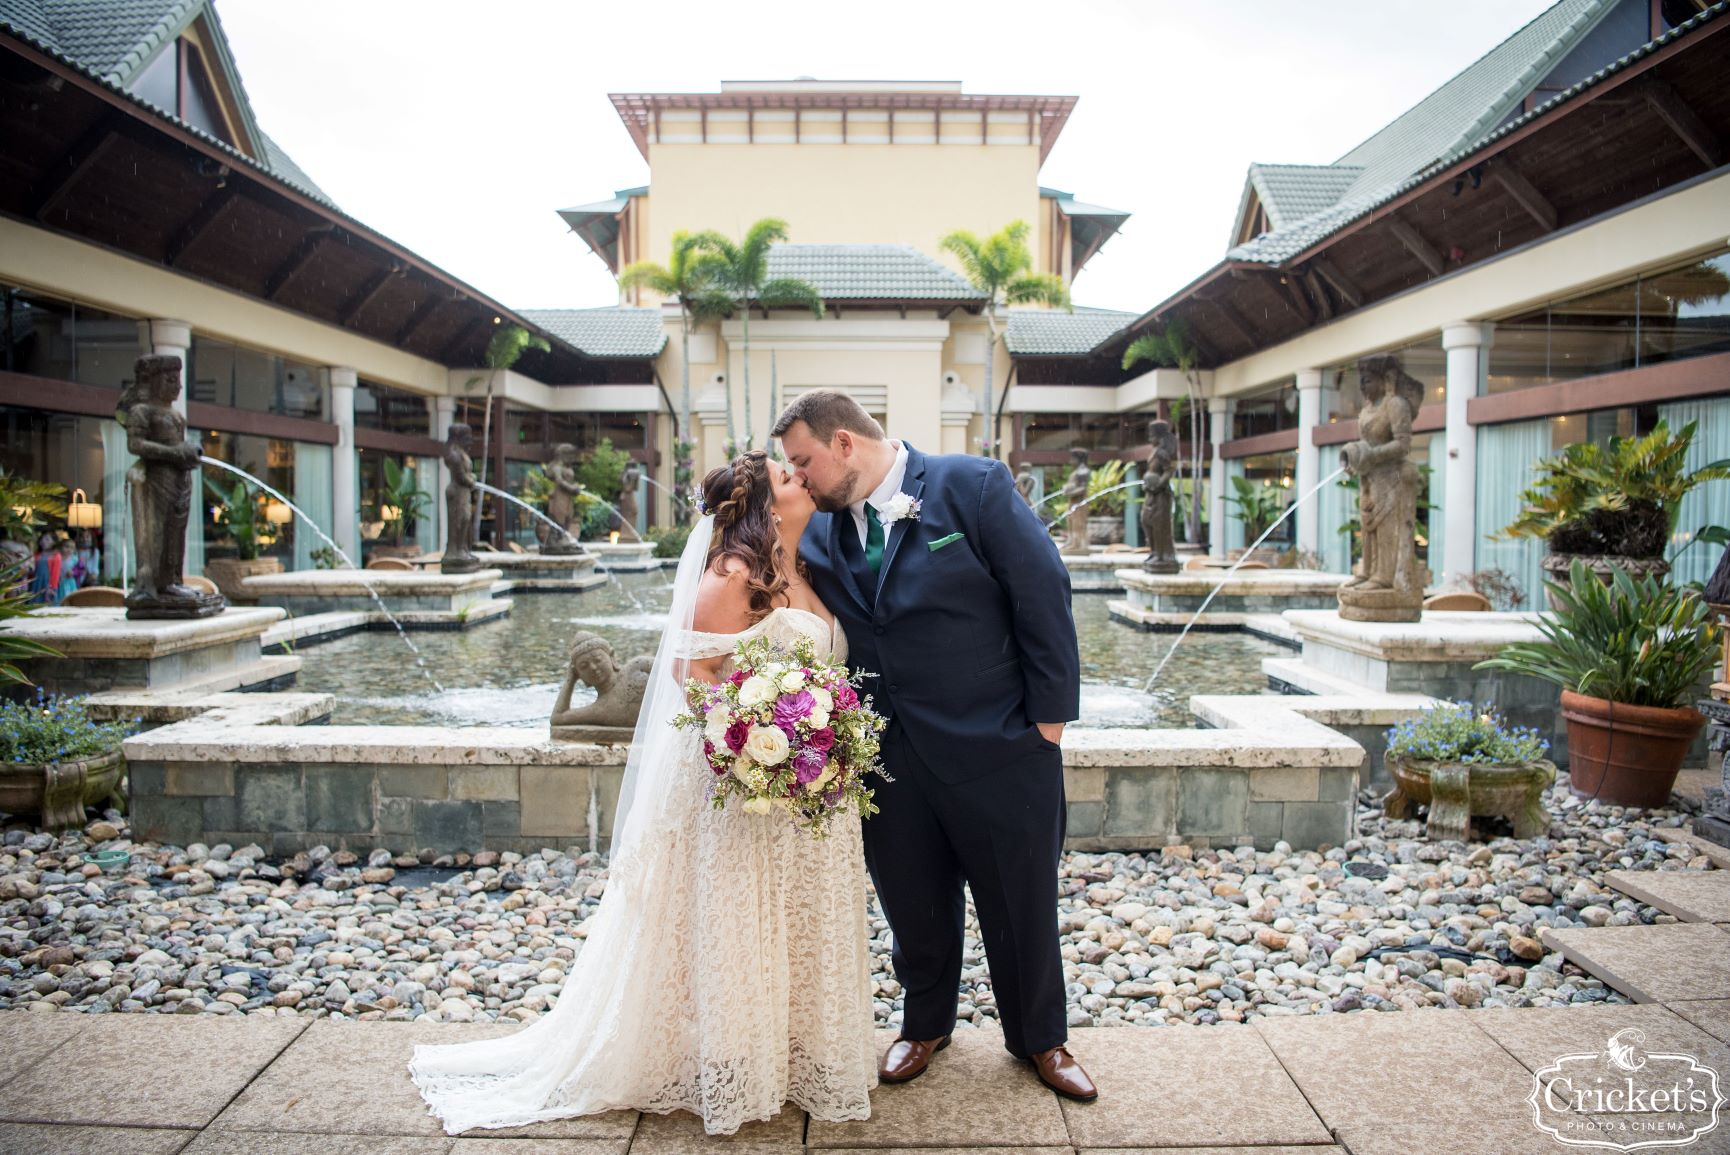 Movie Wedding Theme | Ashley and Andrew at the Royal Pacific Resort